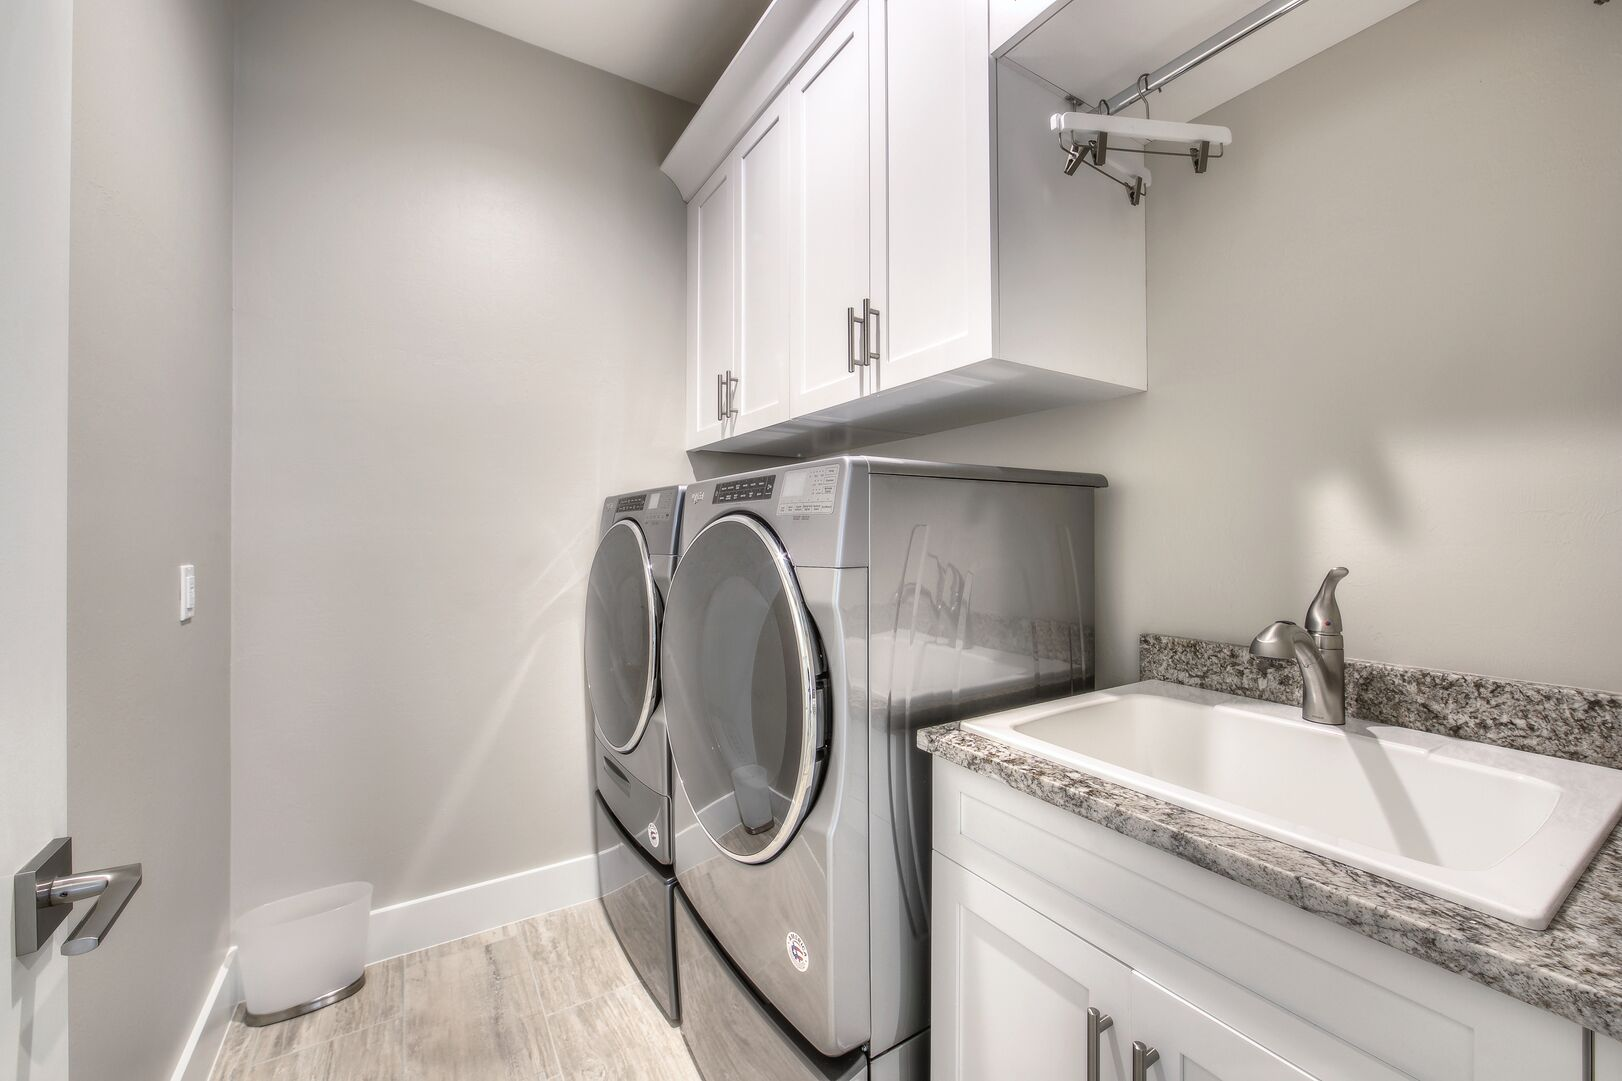 Laundry Room at Vacation Home Rental In Fort Myers Beach Florida